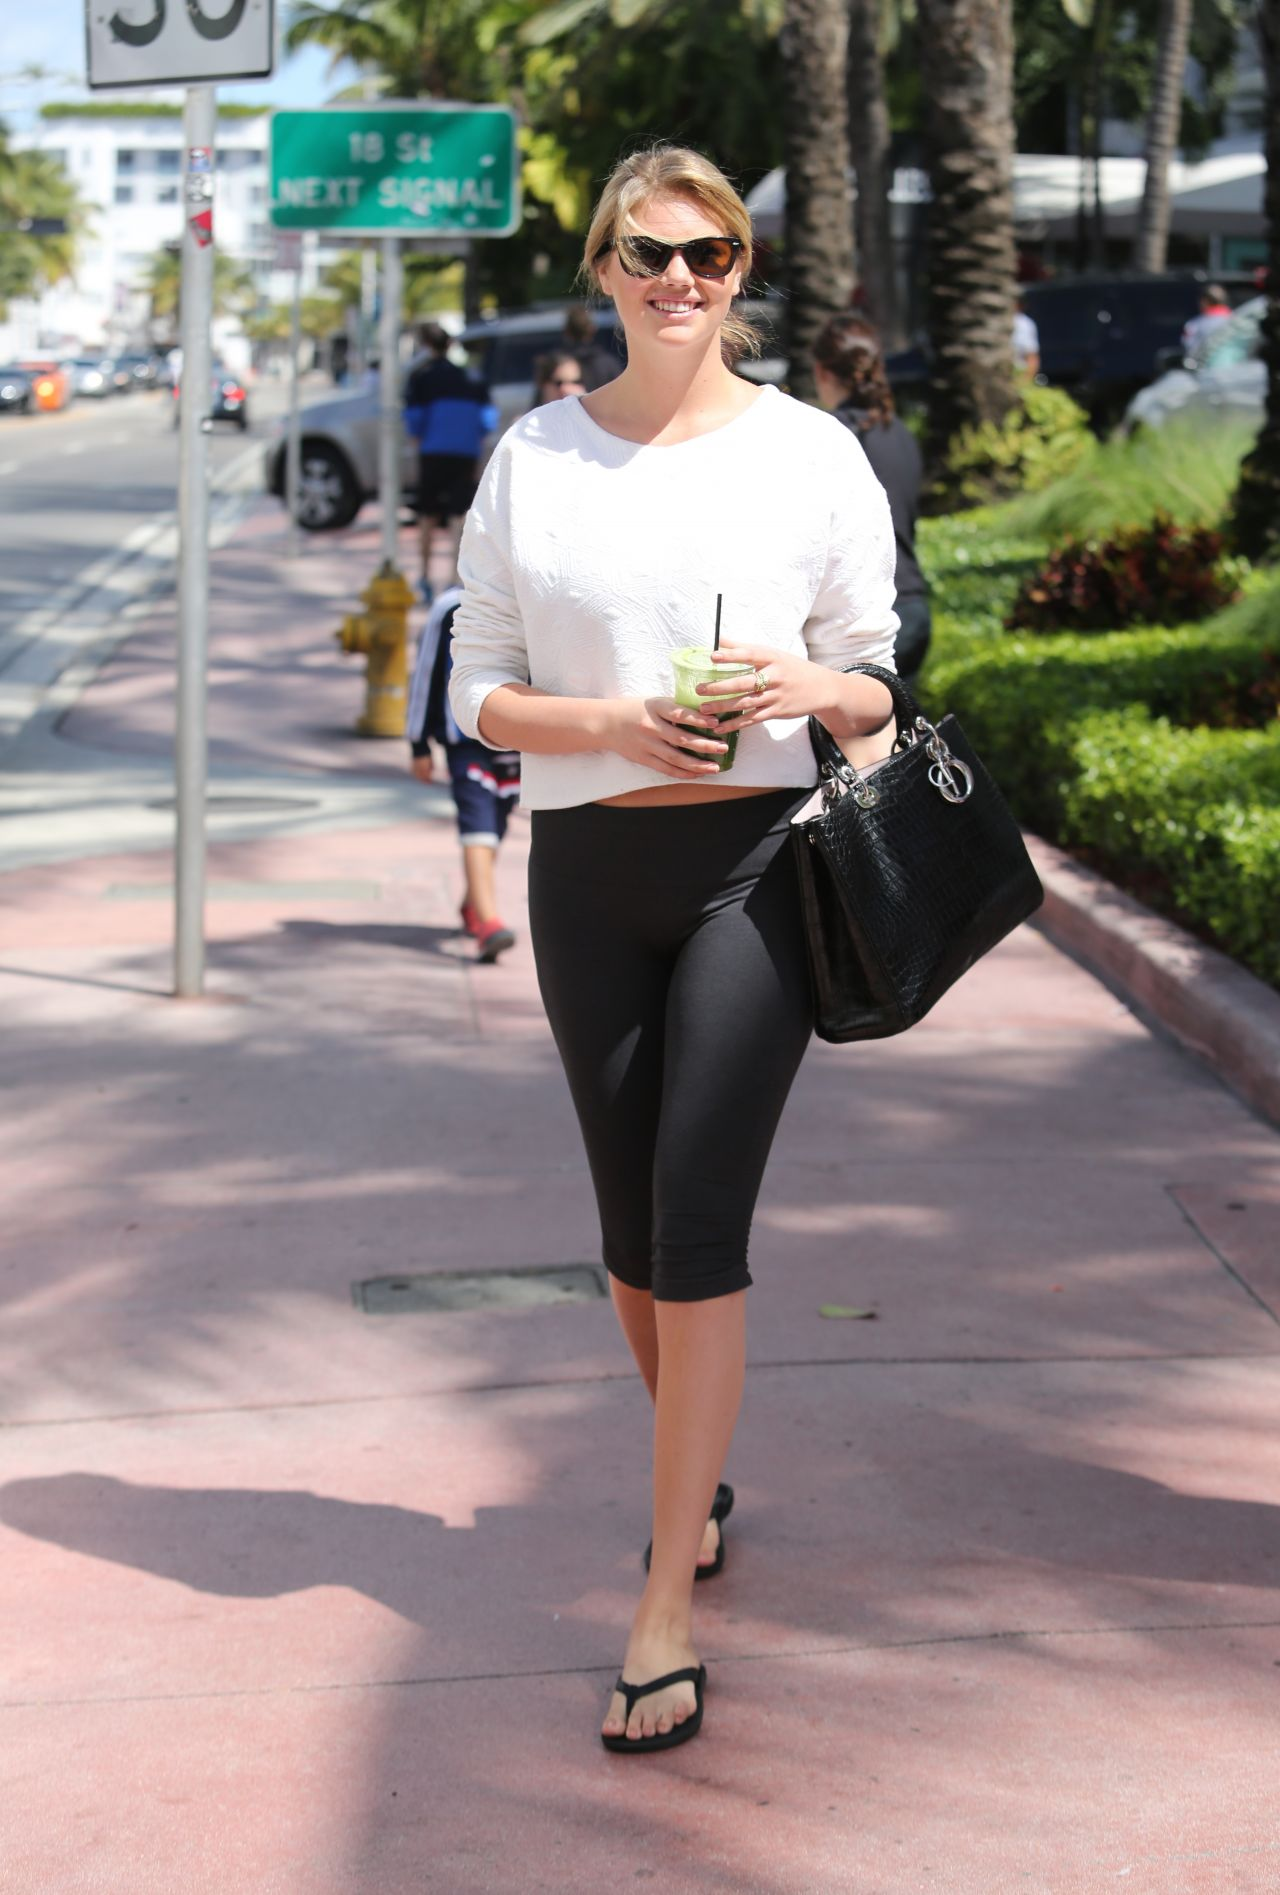 Kate Upton in Miami - March 2014